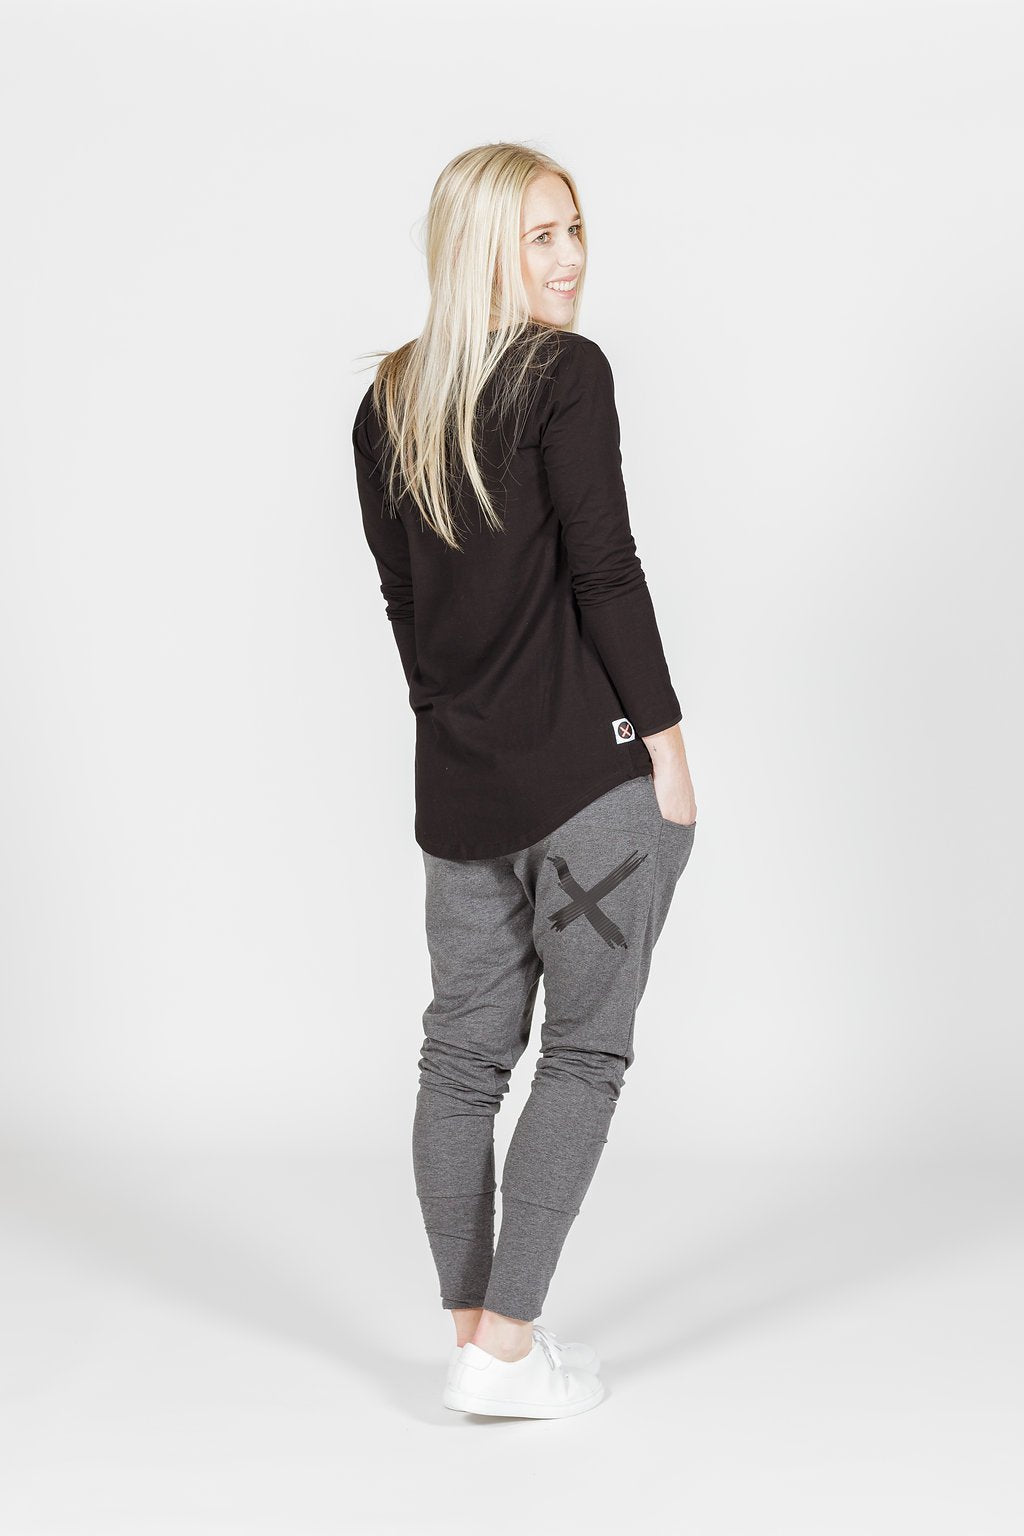 APARTMENT PANTS - Charcoal with Black X print